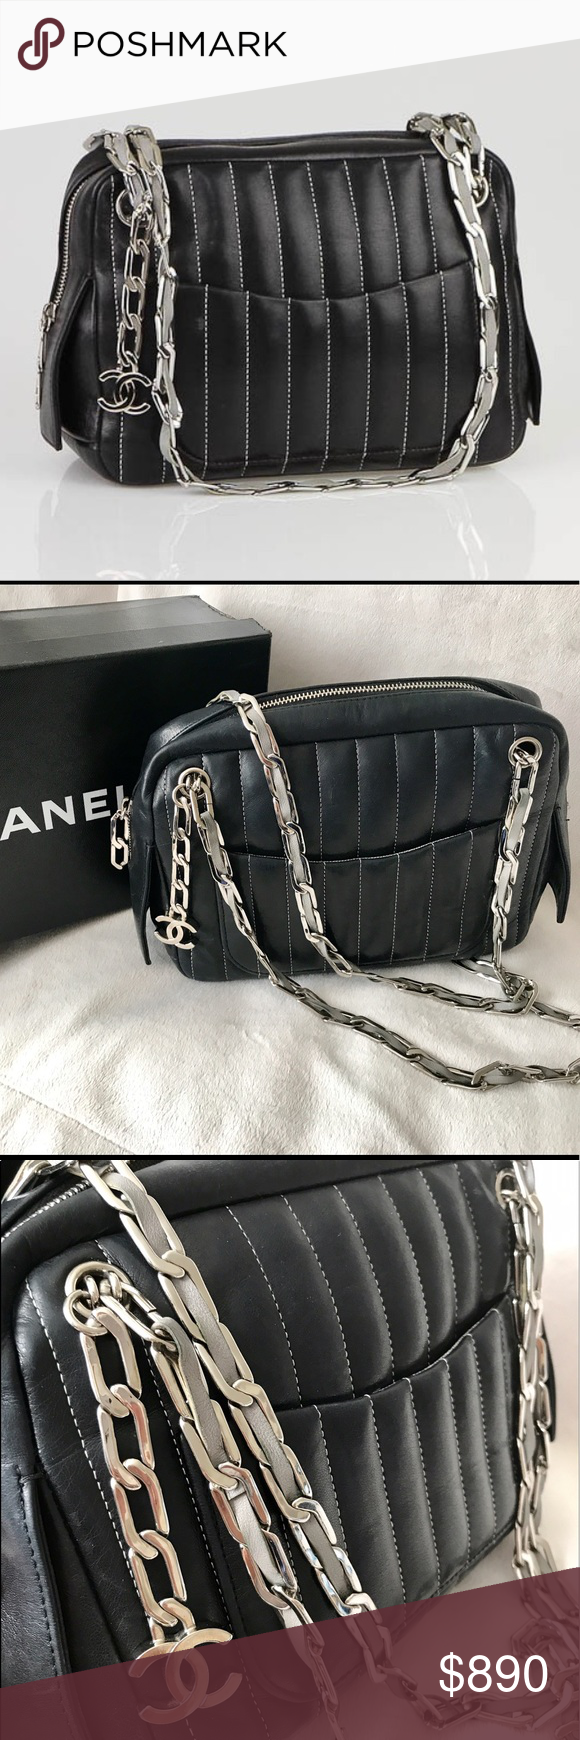 68f7eeec0c57 Chanel Black Quilted Mademoiselle Ligne Camera Bag Authentic Gorgeous and  Rare Chanel Black Quilted Lambskin Mademoiselle